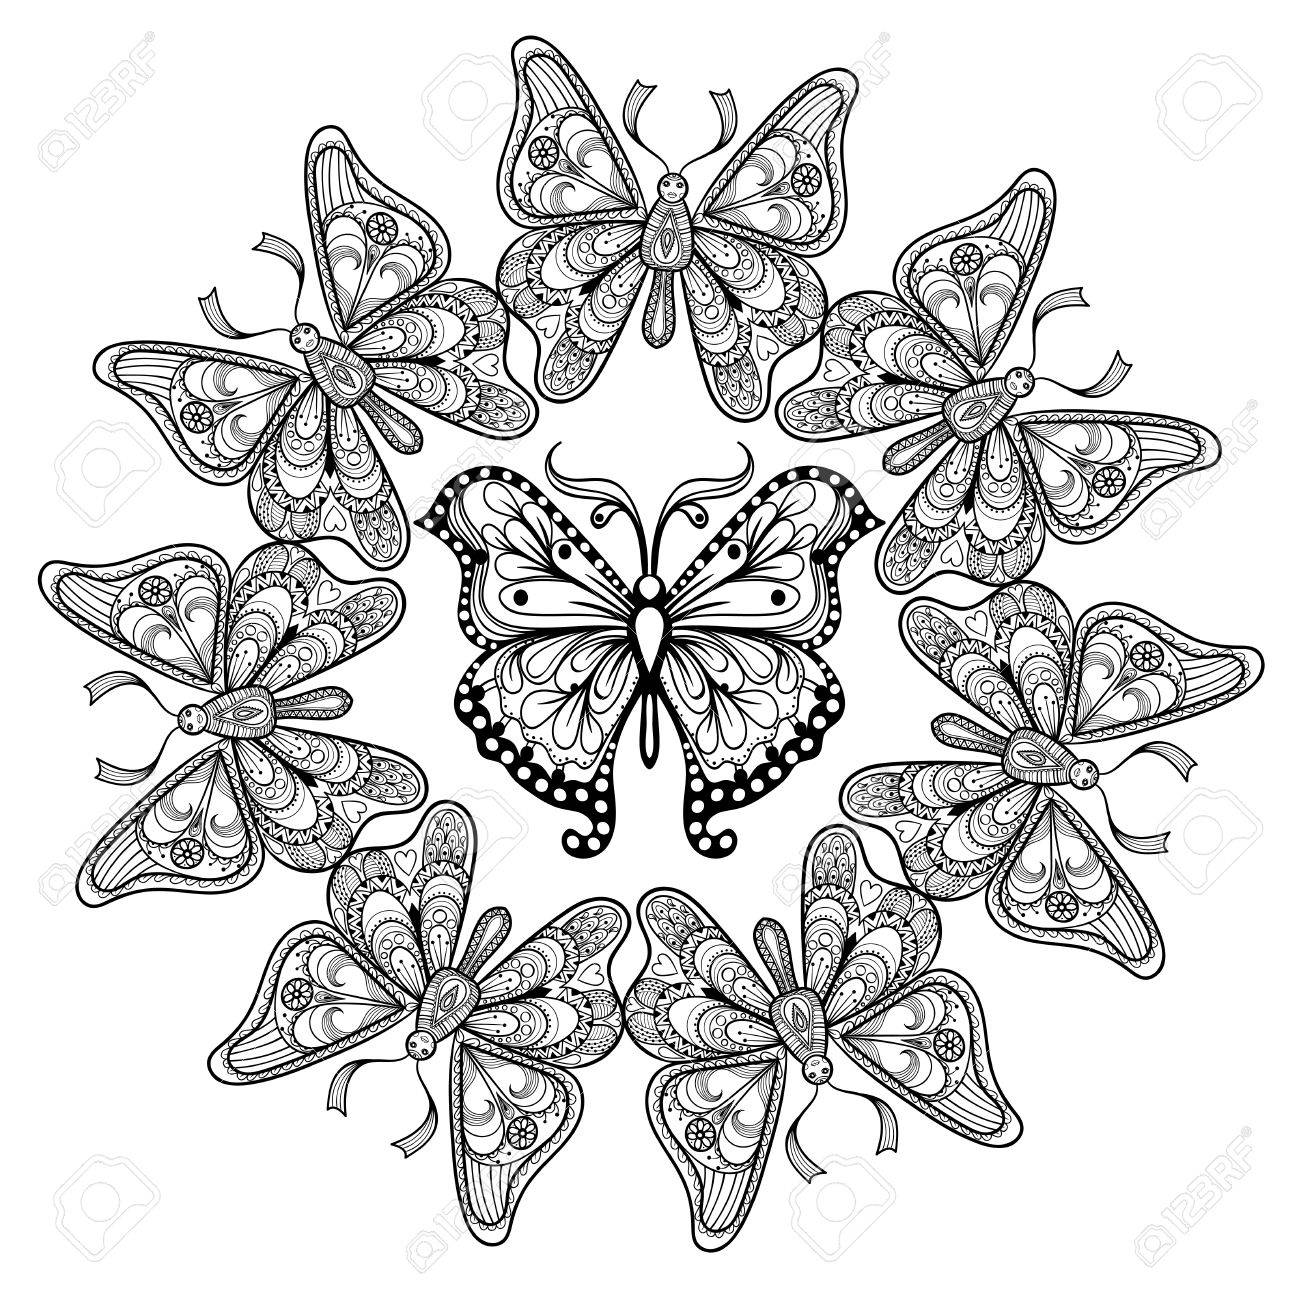 e4ca553ce ... Butterflies for adult anti stress coloring pages in doodle style.  Ornamental tribal patterned illustration for tattoos, posters or prints  decoration.